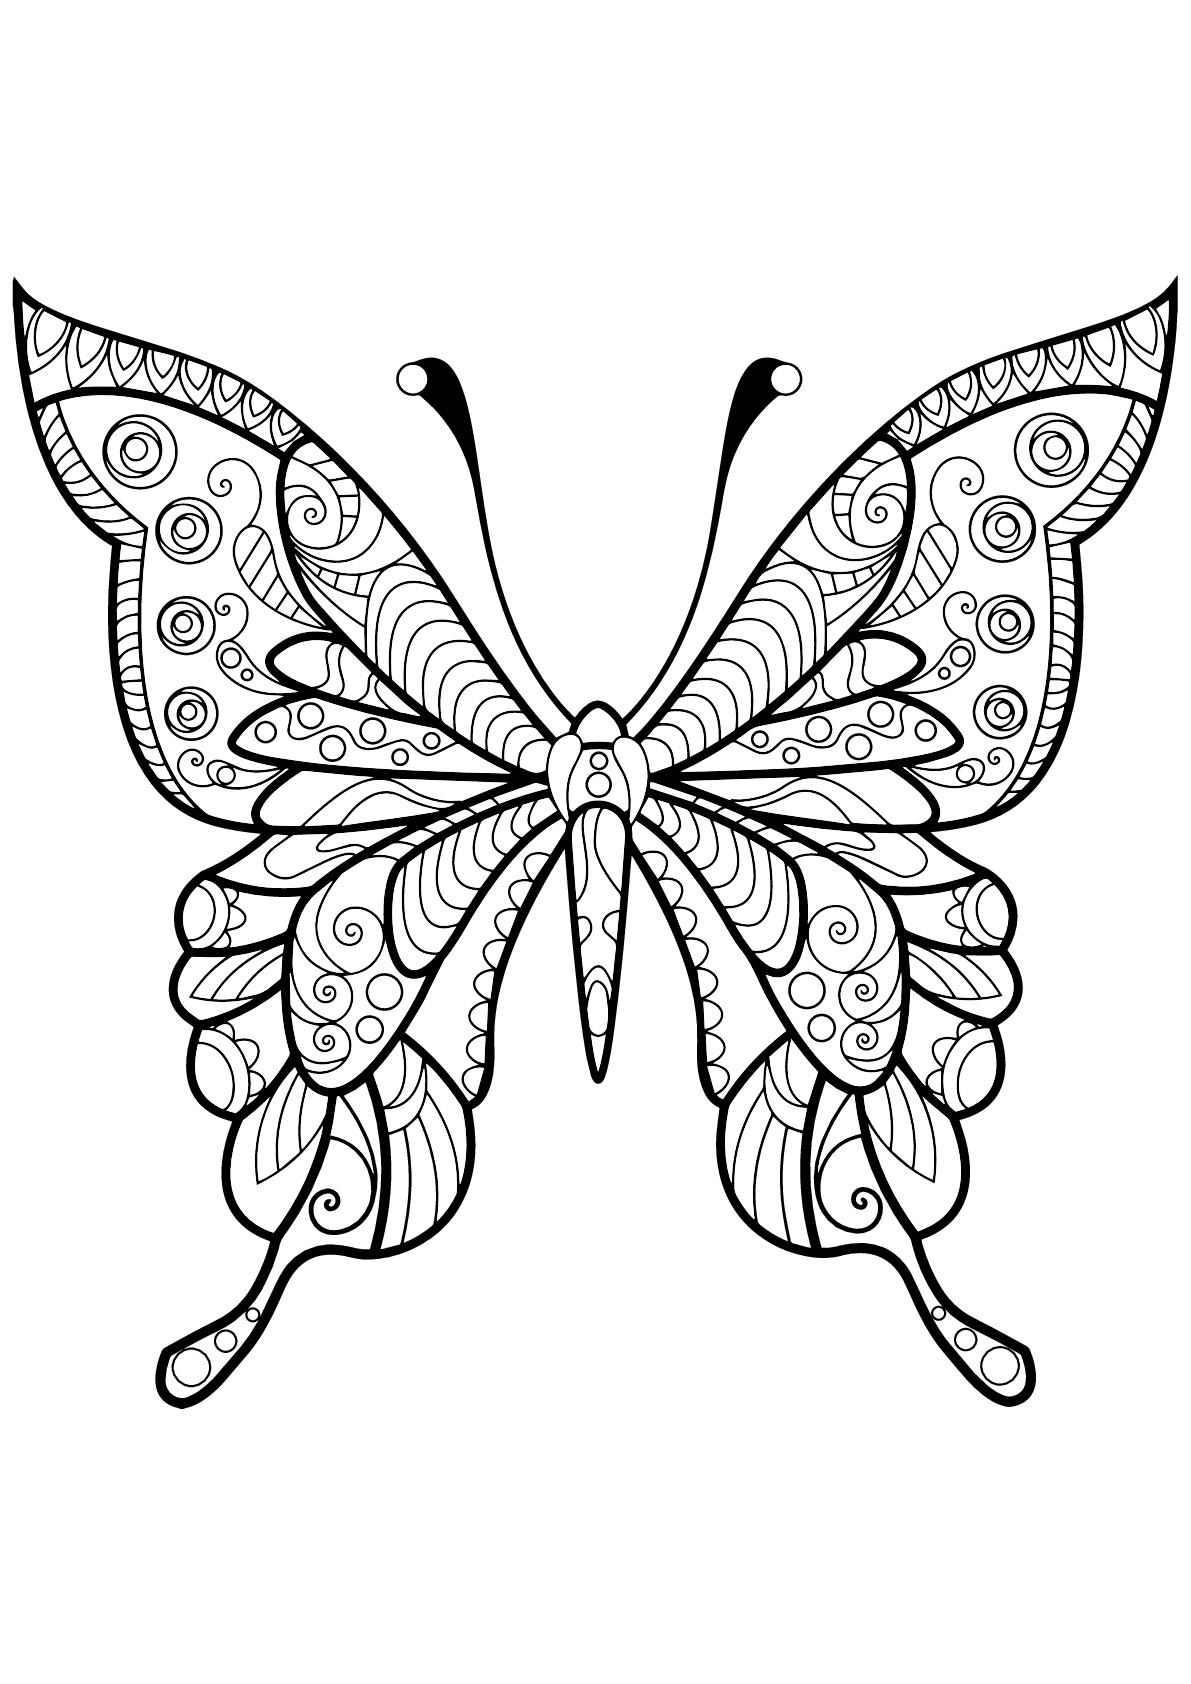 coloring pages for kids butterfly butterflies free to color for kids butterflies kids coloring for pages butterfly kids